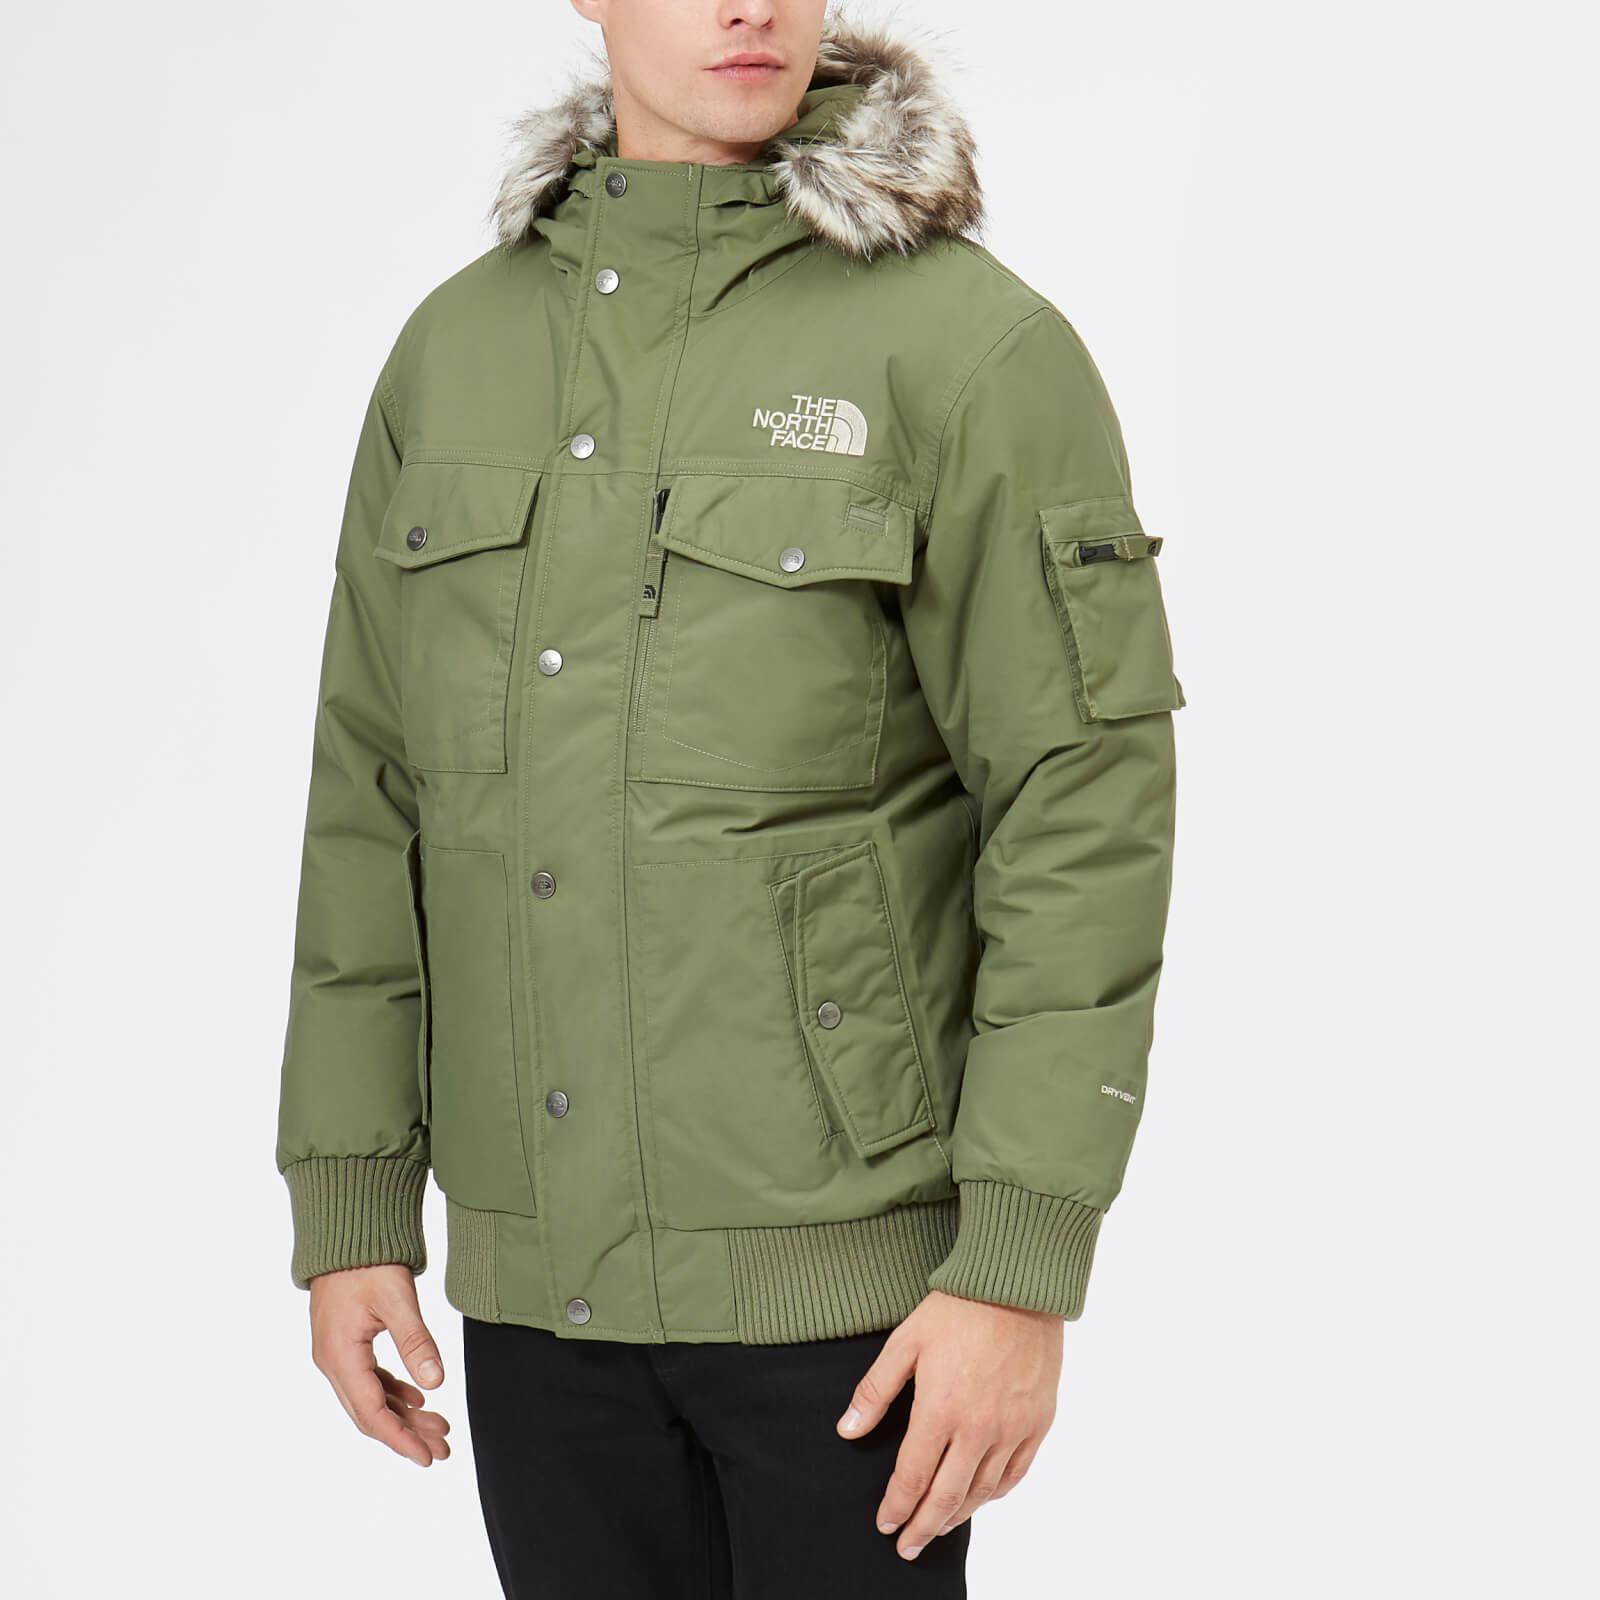 a331ed702 The North Face Gotham Jacket in Green for Men - Lyst